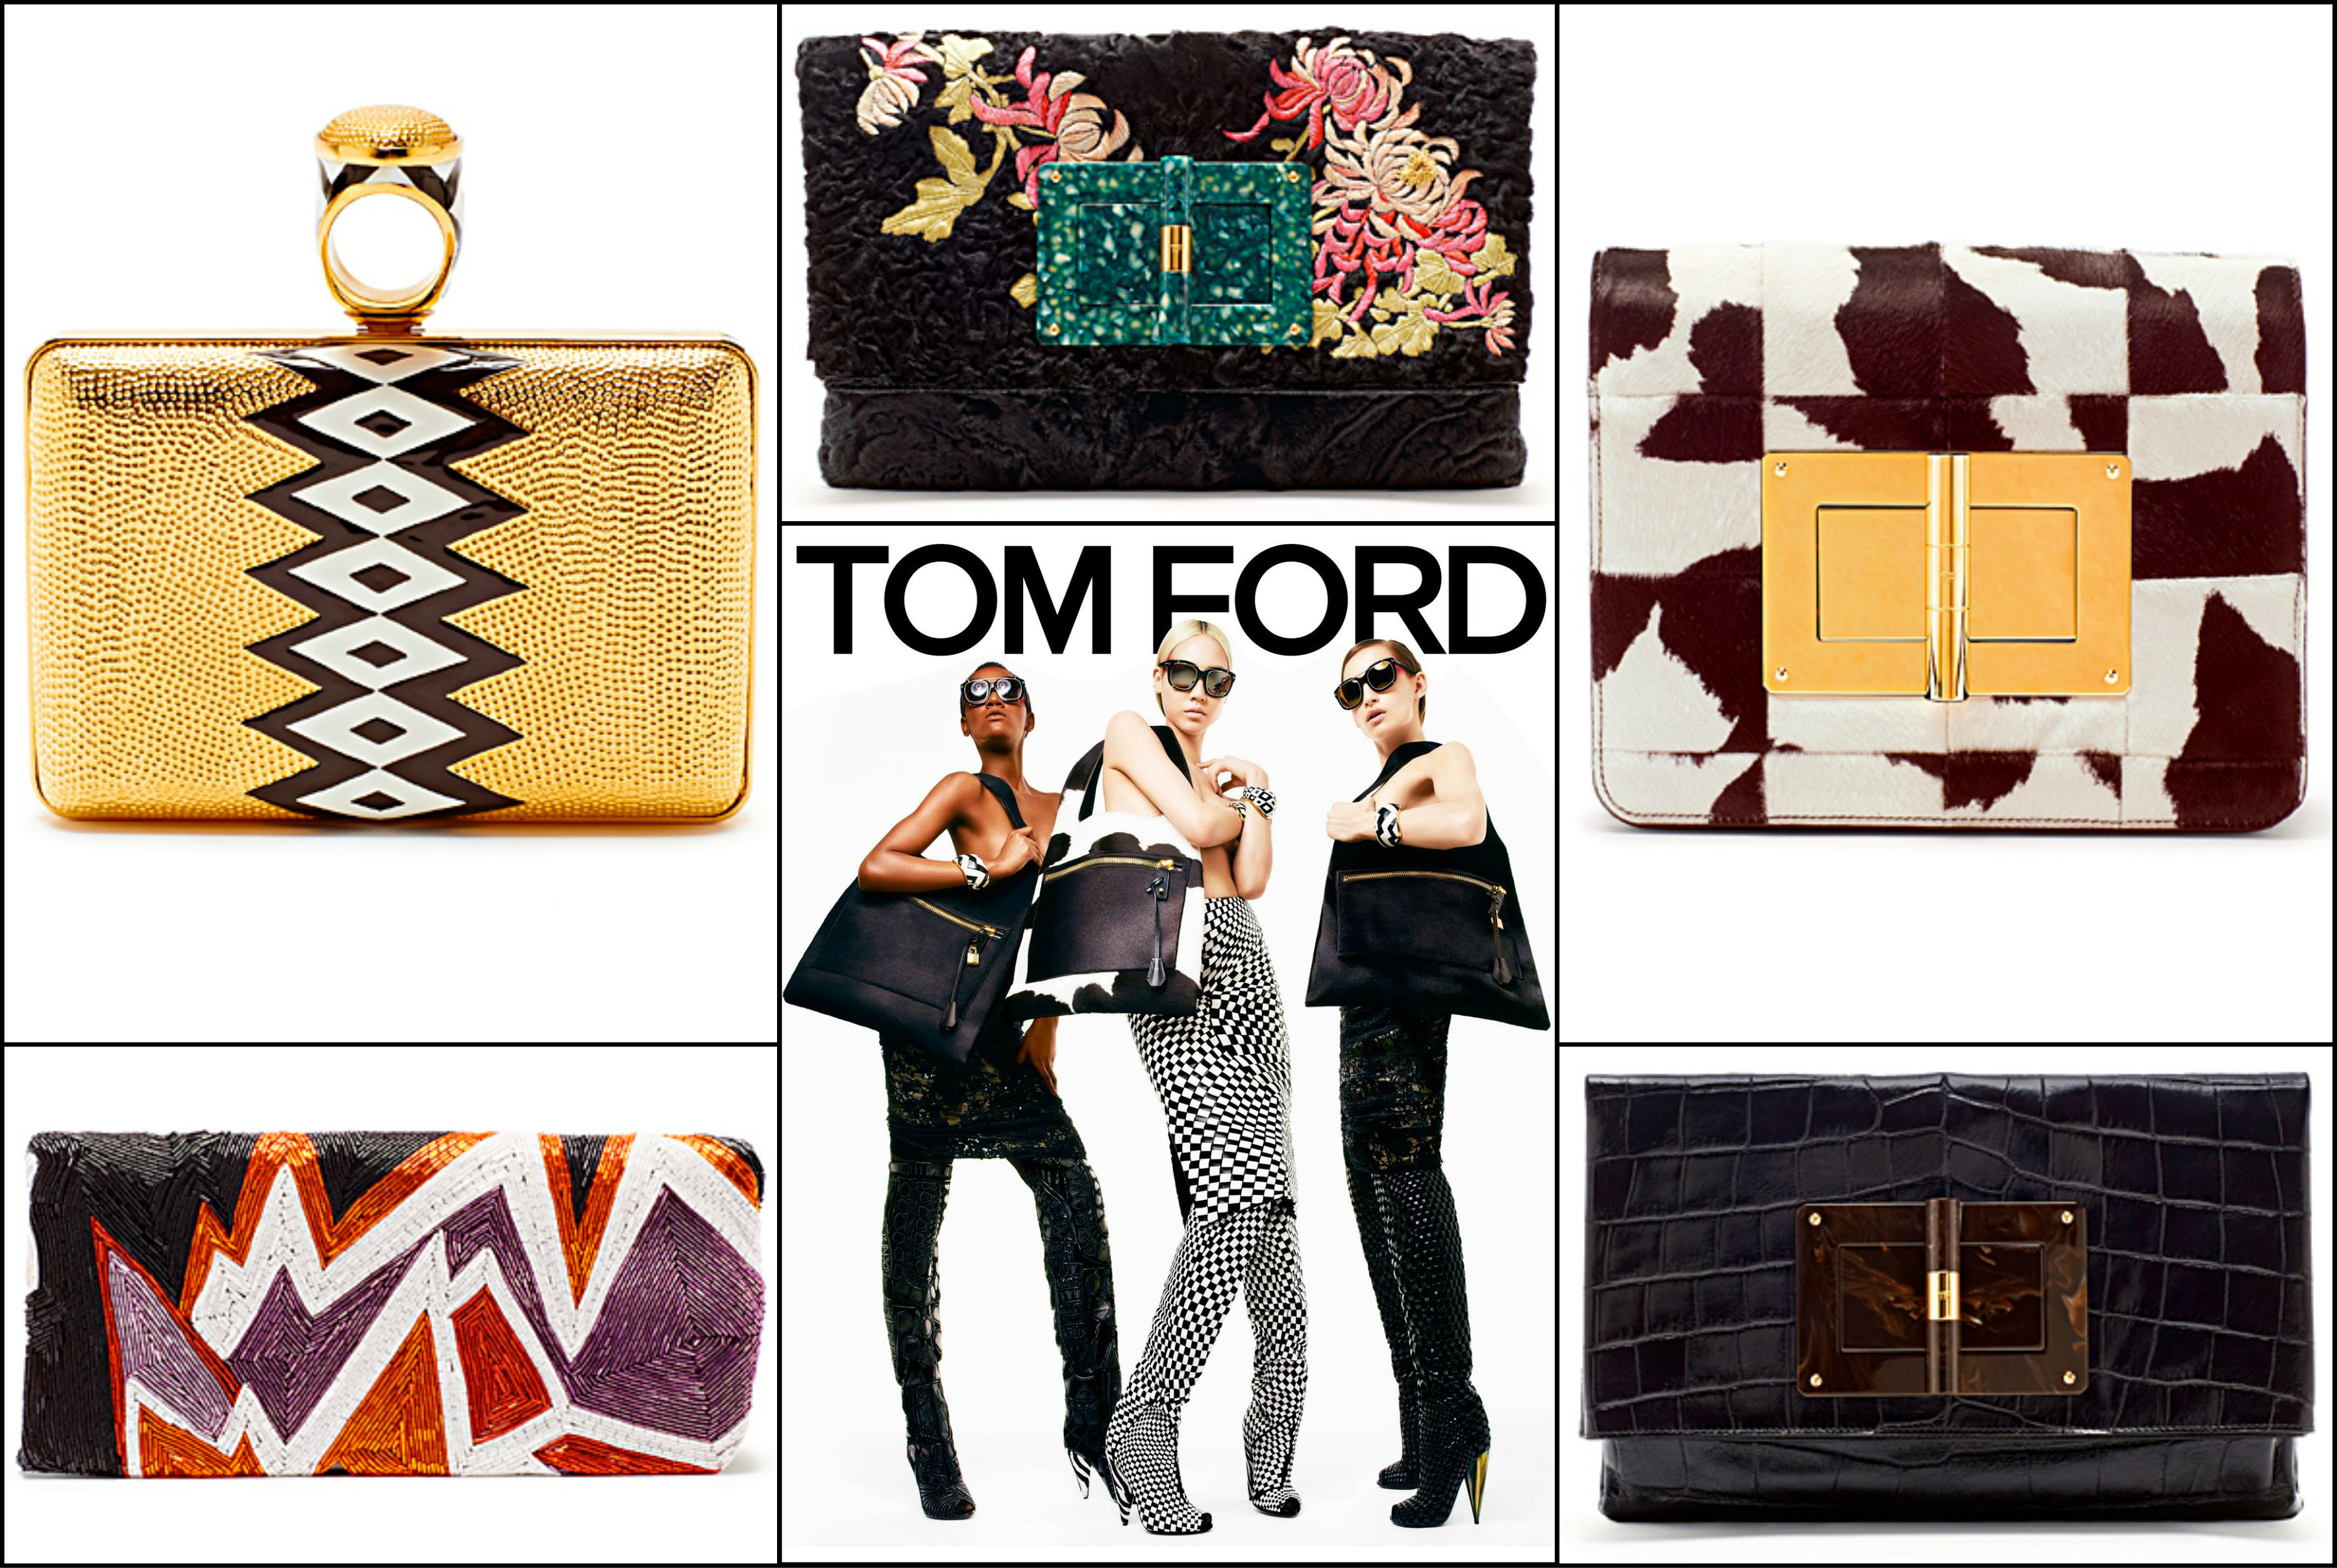 TOMFORD_2013_Accessories